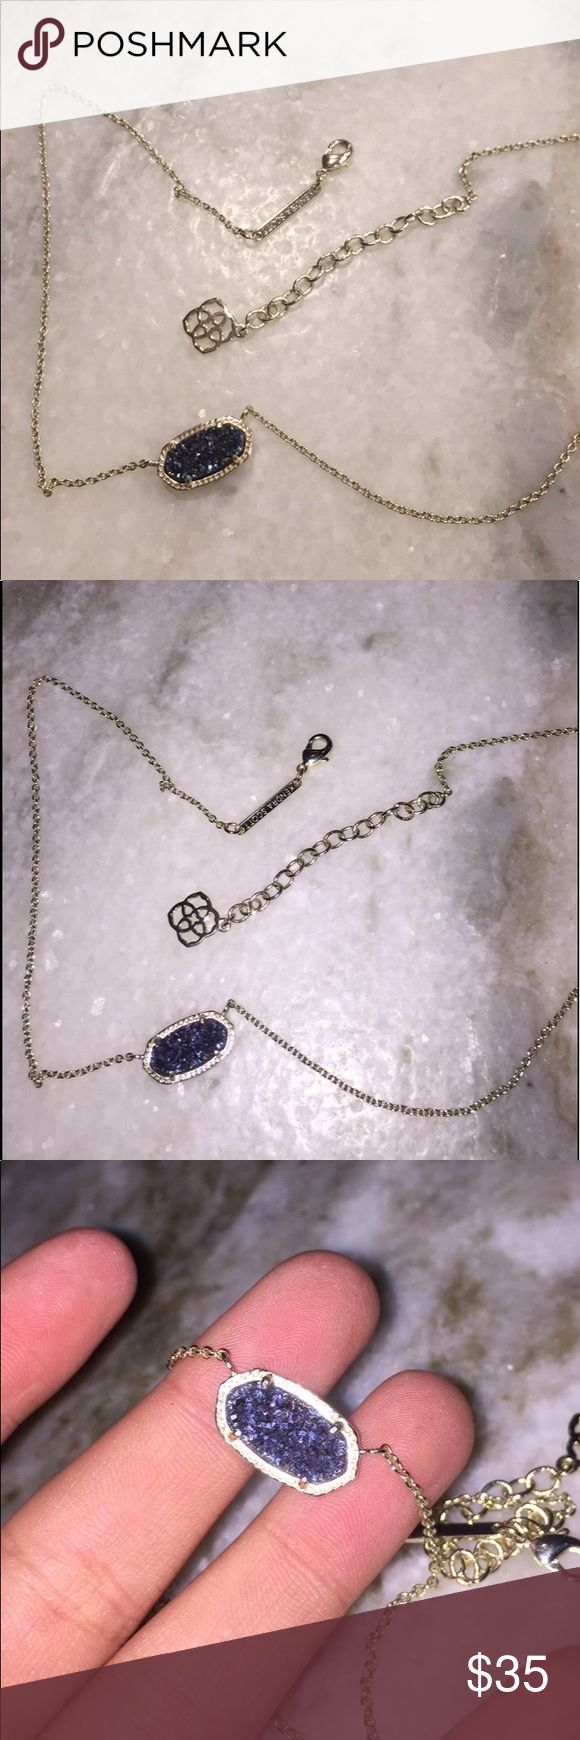 Kendra Scott gold chain necklace with blue pendant Kendra Scott: gold chain, regular necklace length, worn only three times, chain not faded at all, pendant is sparkly navy blue and has a rough texture Kendra Scott Jewelry Necklaces